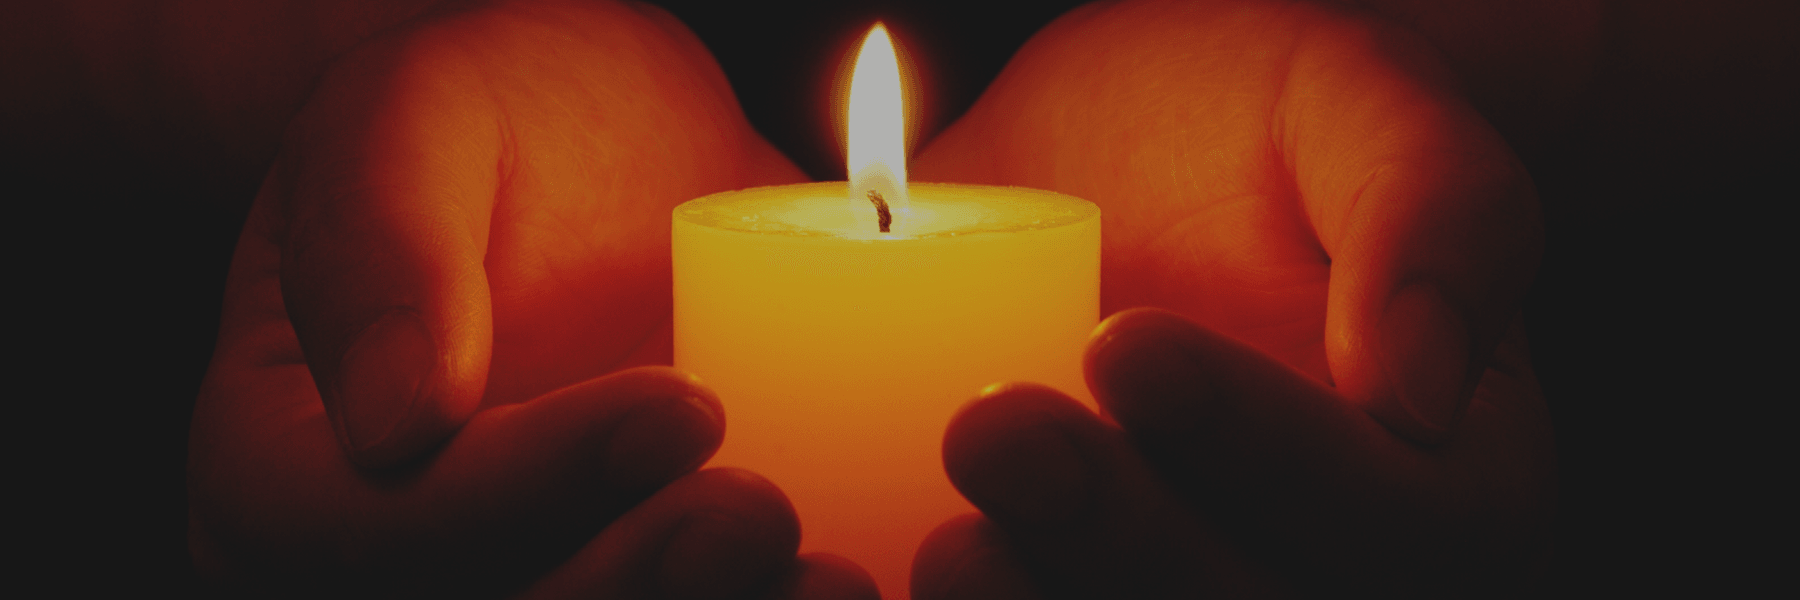 Hands hold a glowing candle